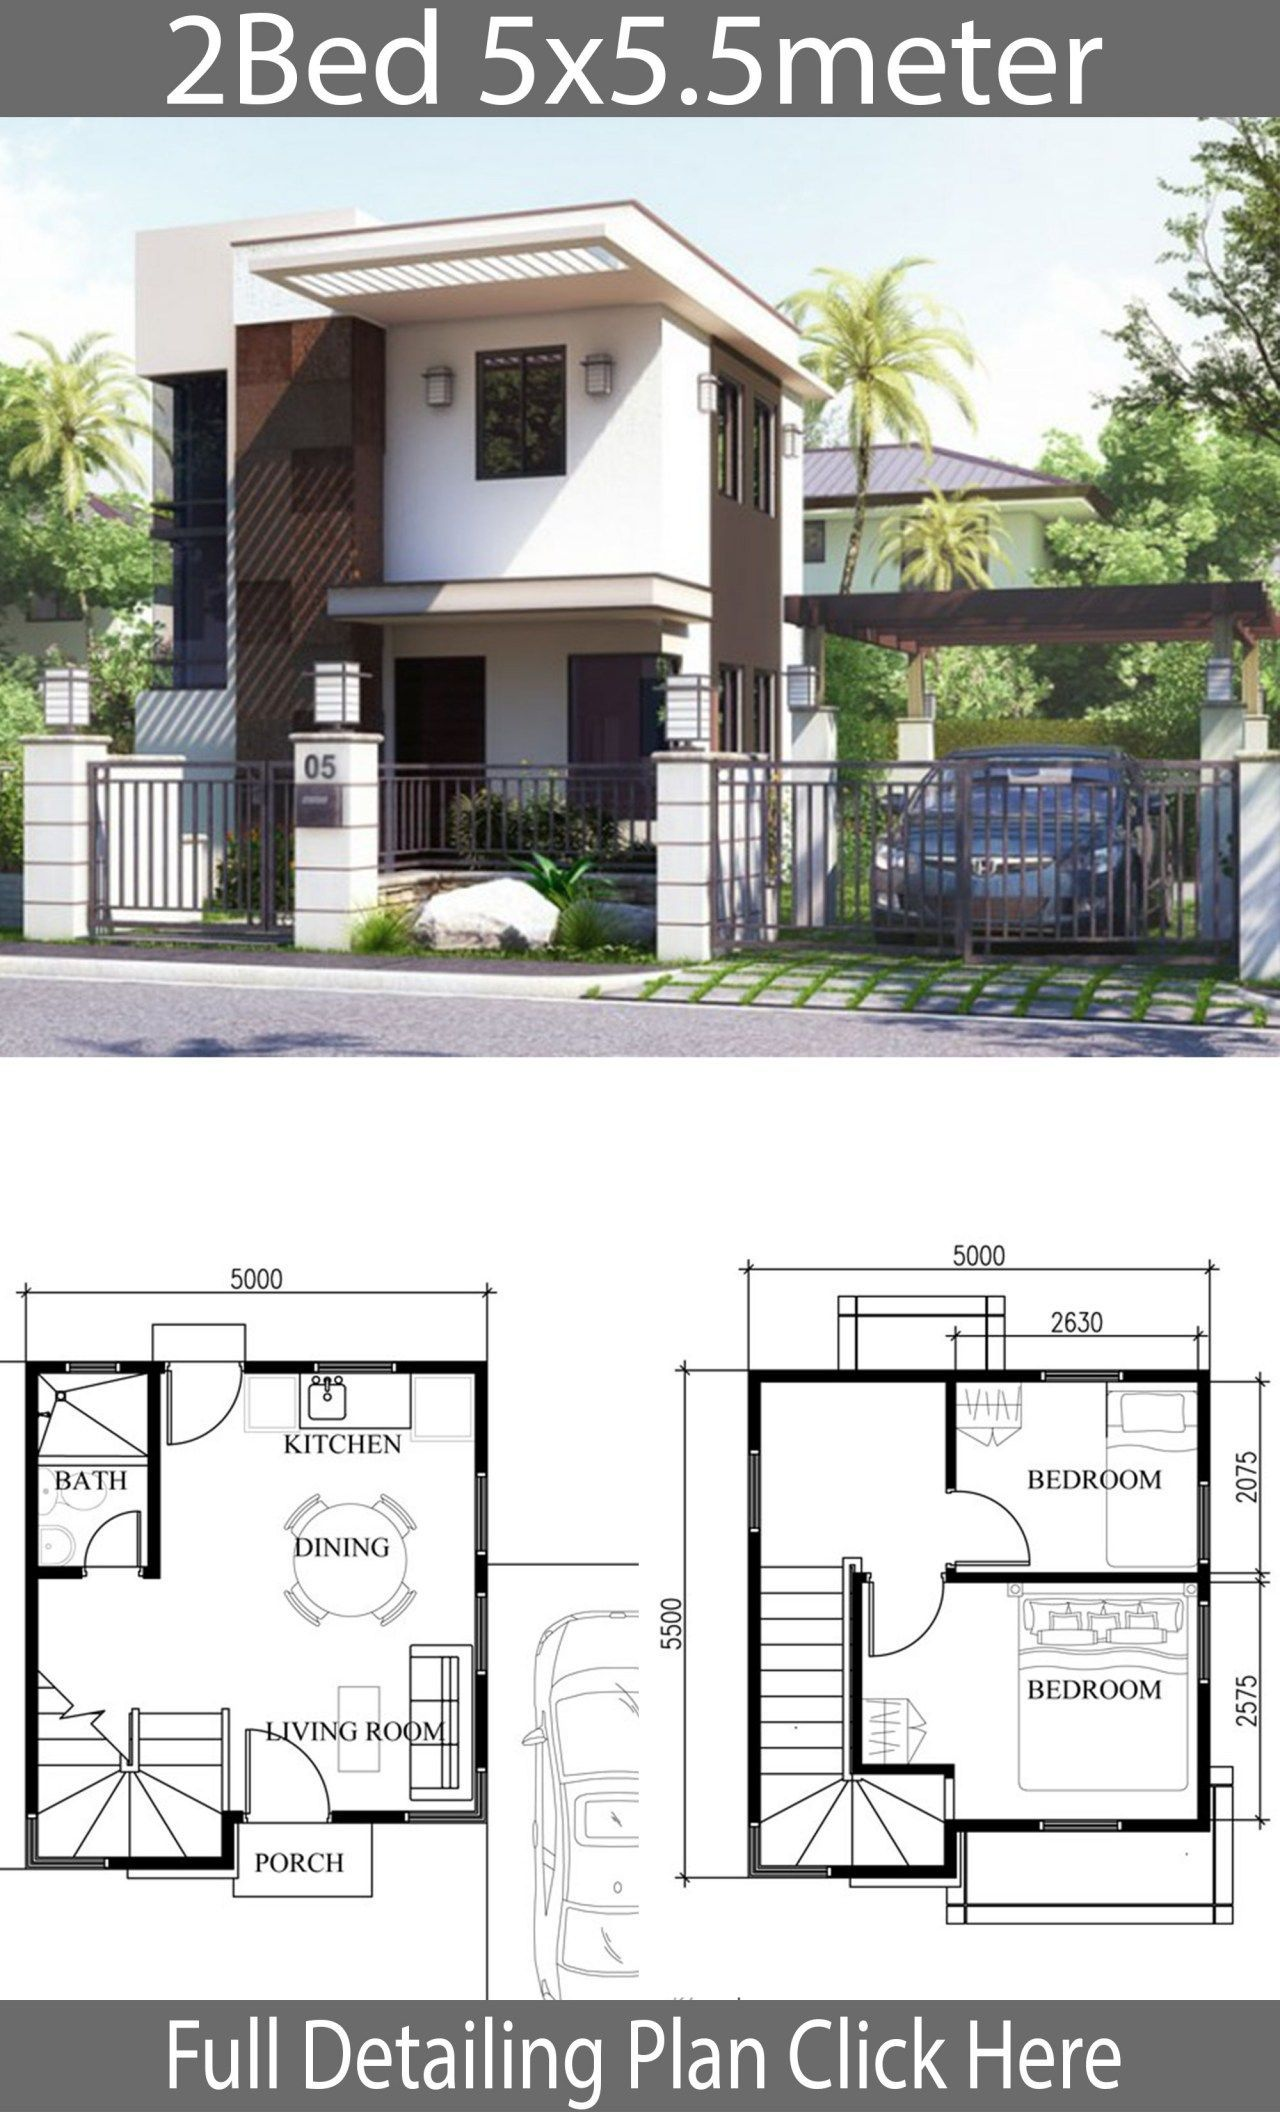 Small Home Design Plan 5x5 5m With 2 Bedrooms Small House Micro House Plans House Front Design Small House Design Plans